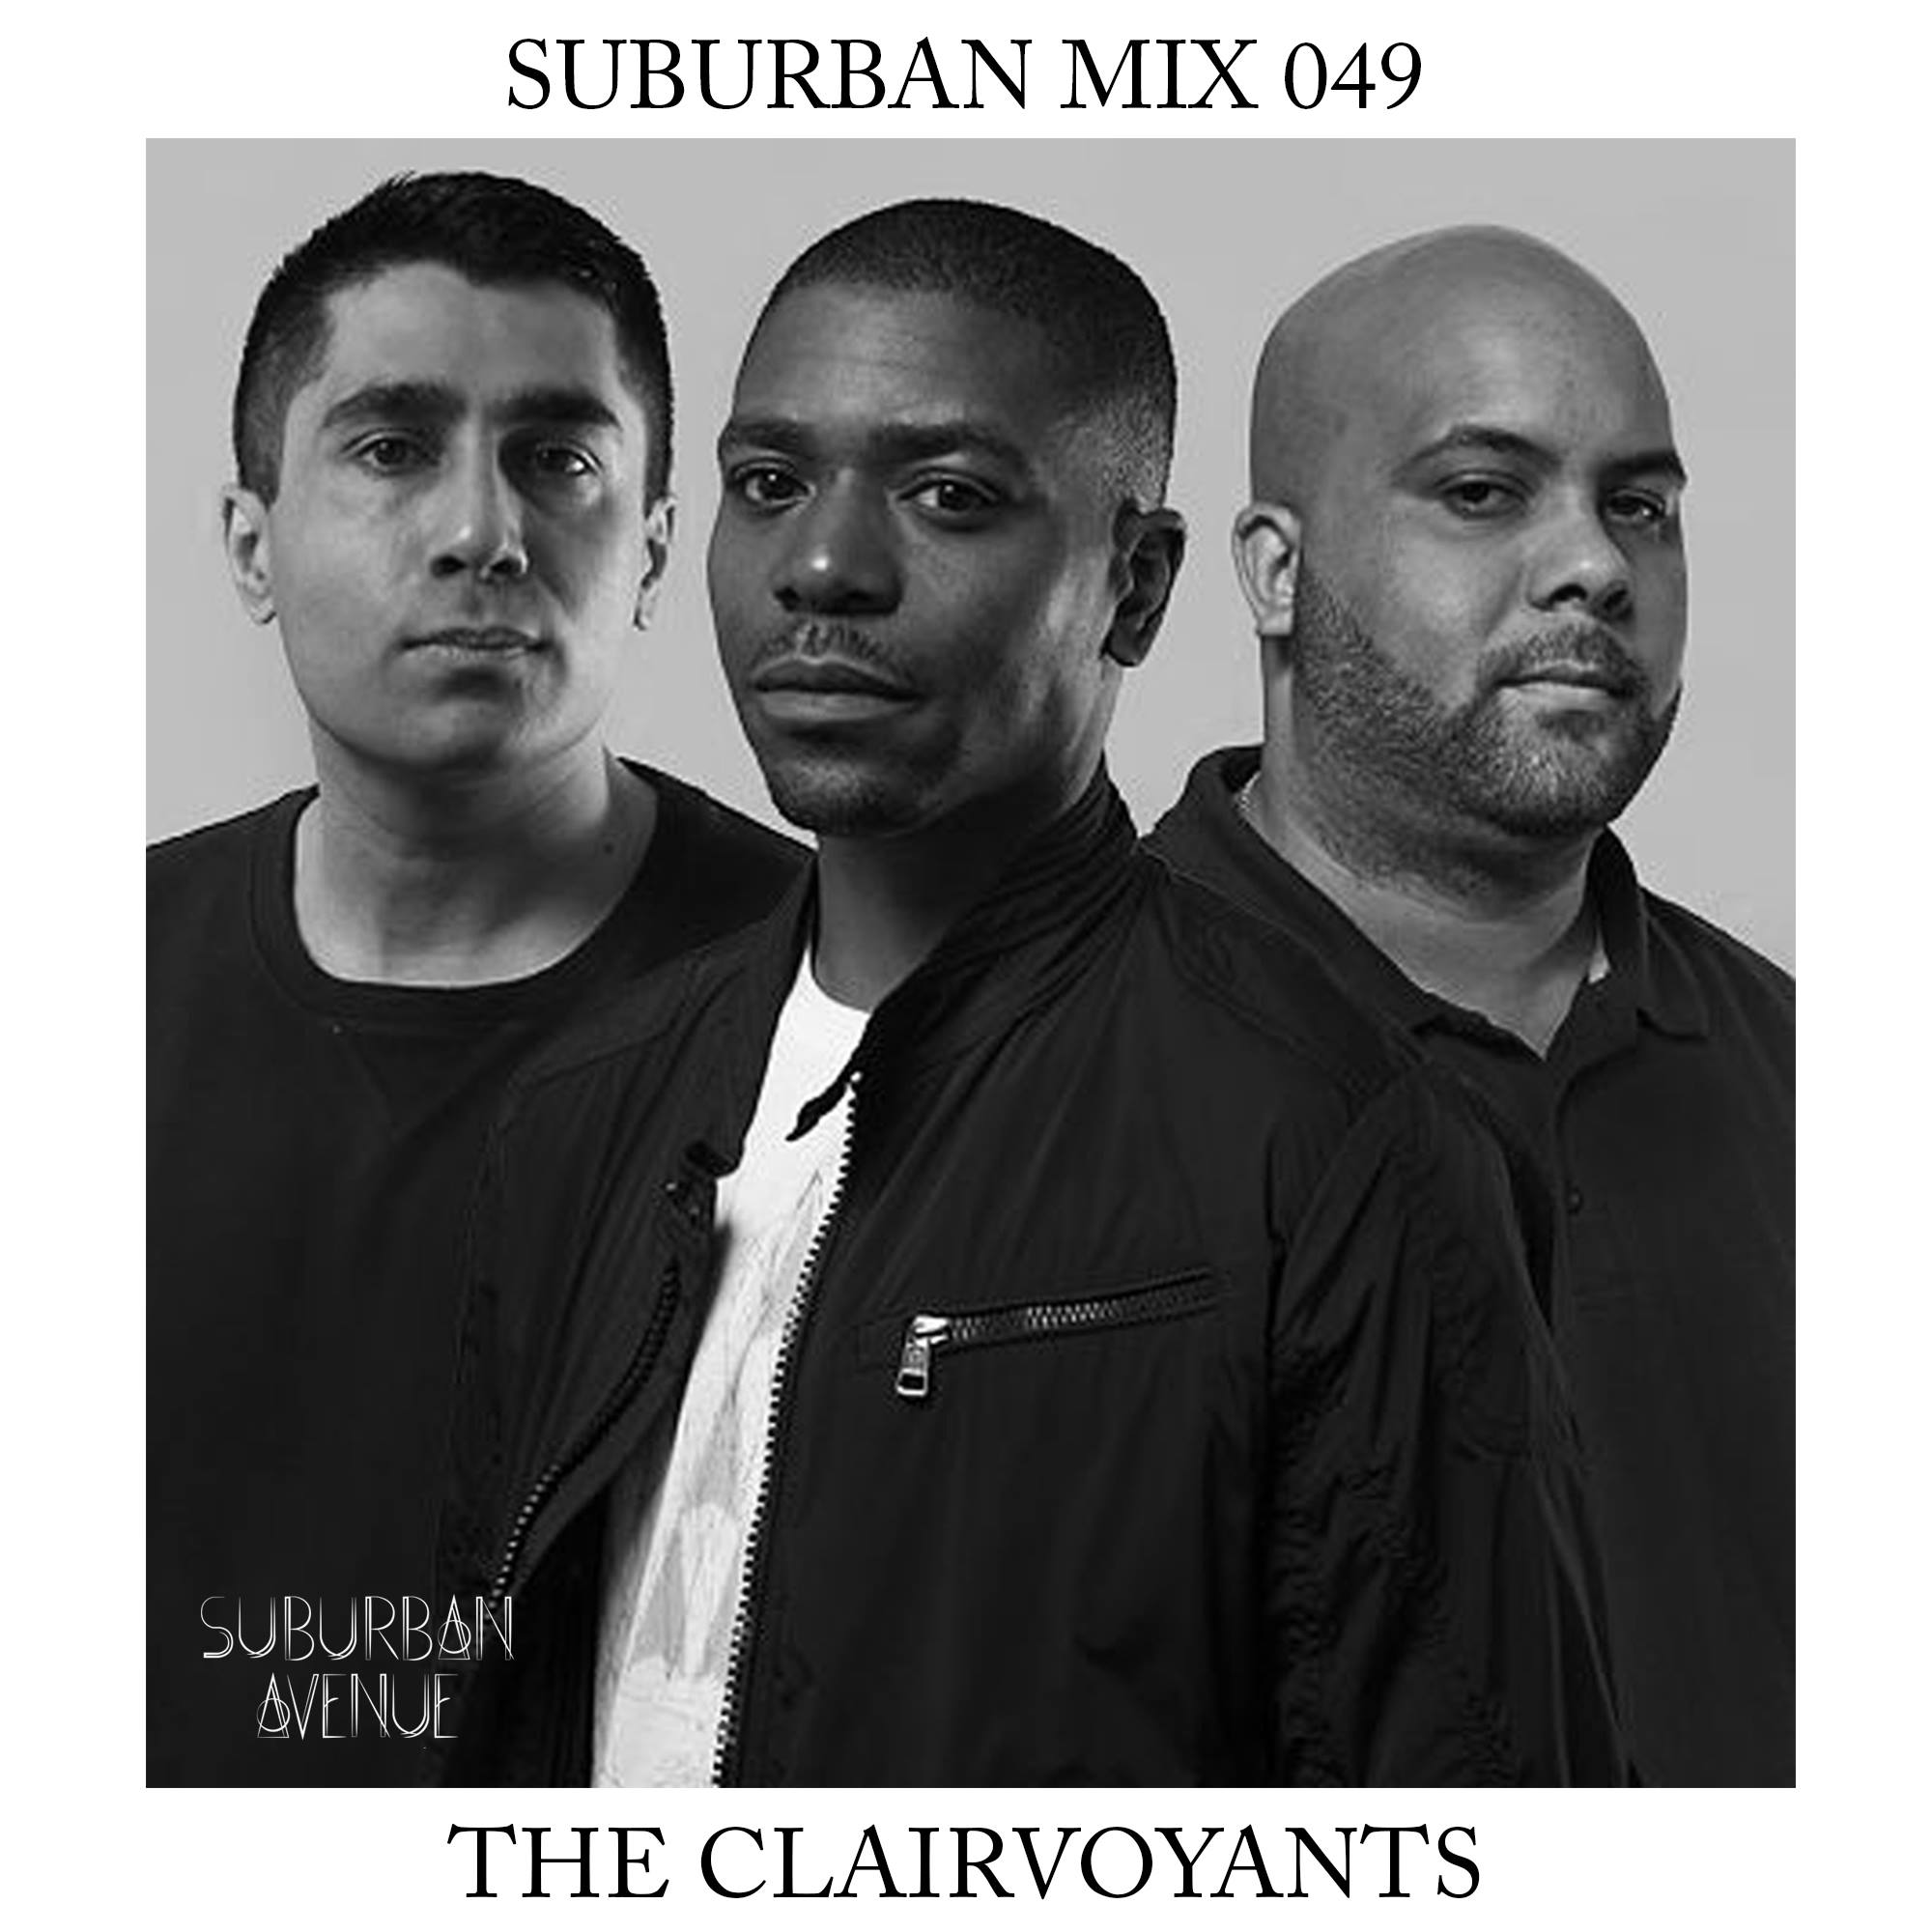 Suburban Mix 049 - The Clairvoyants